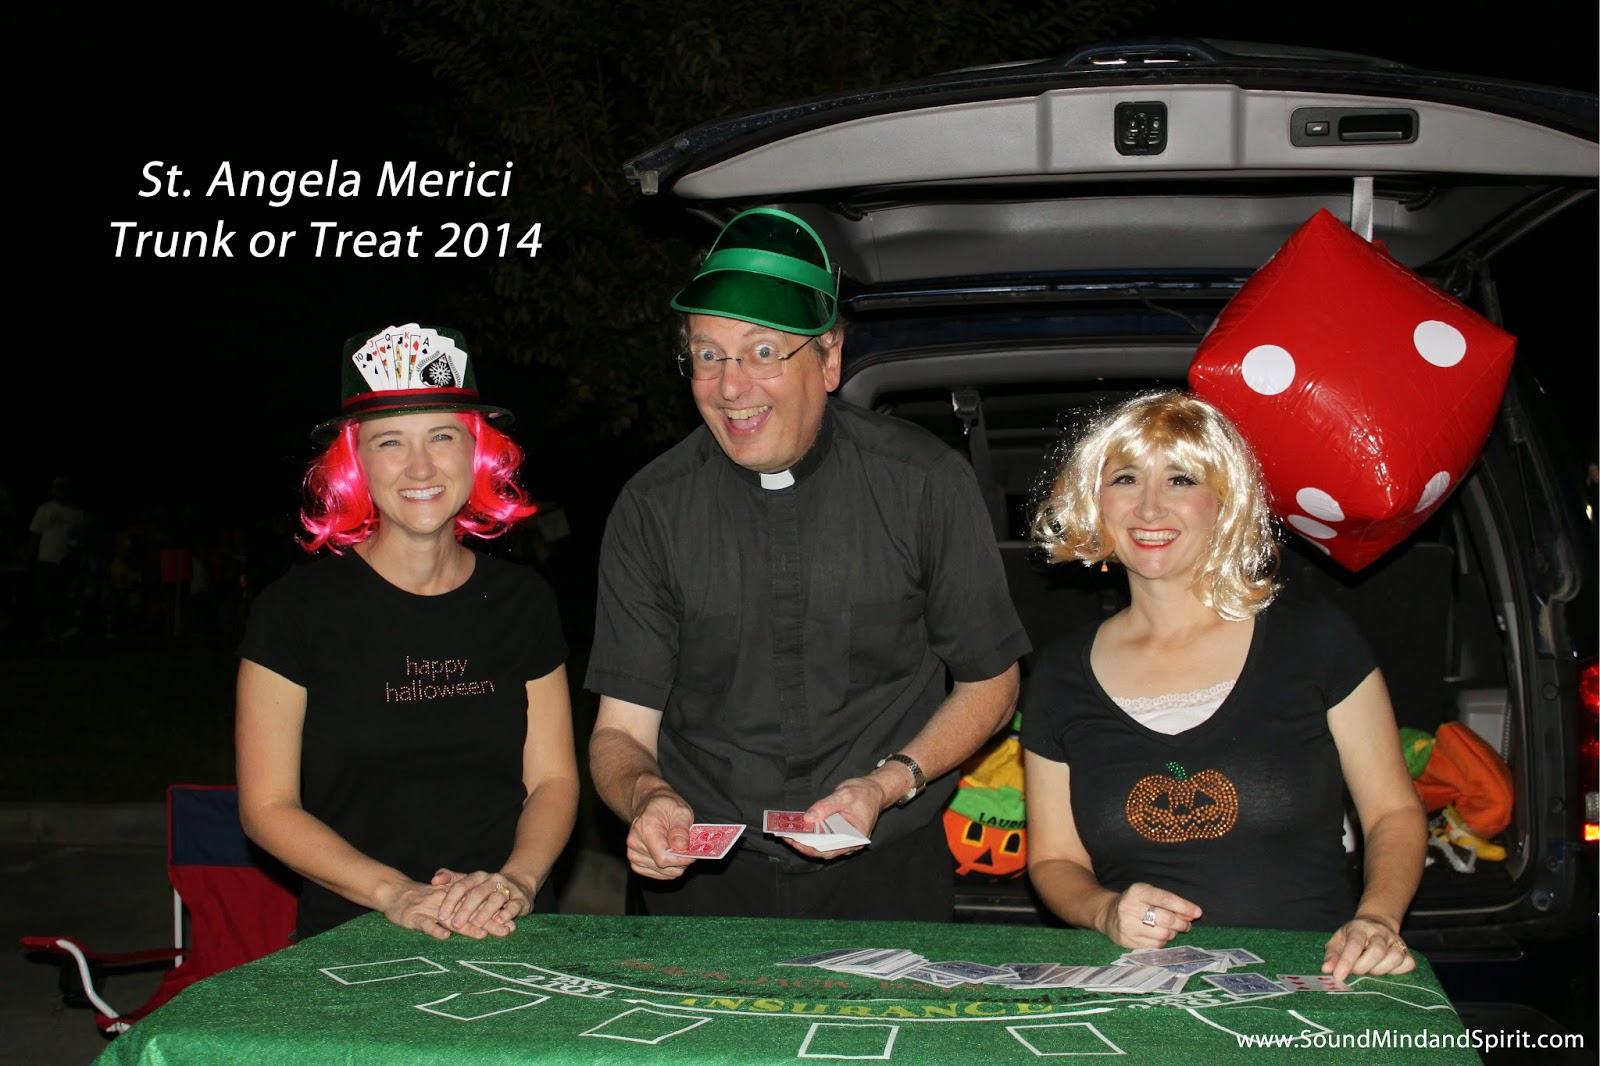 Parish Trunk or Treat